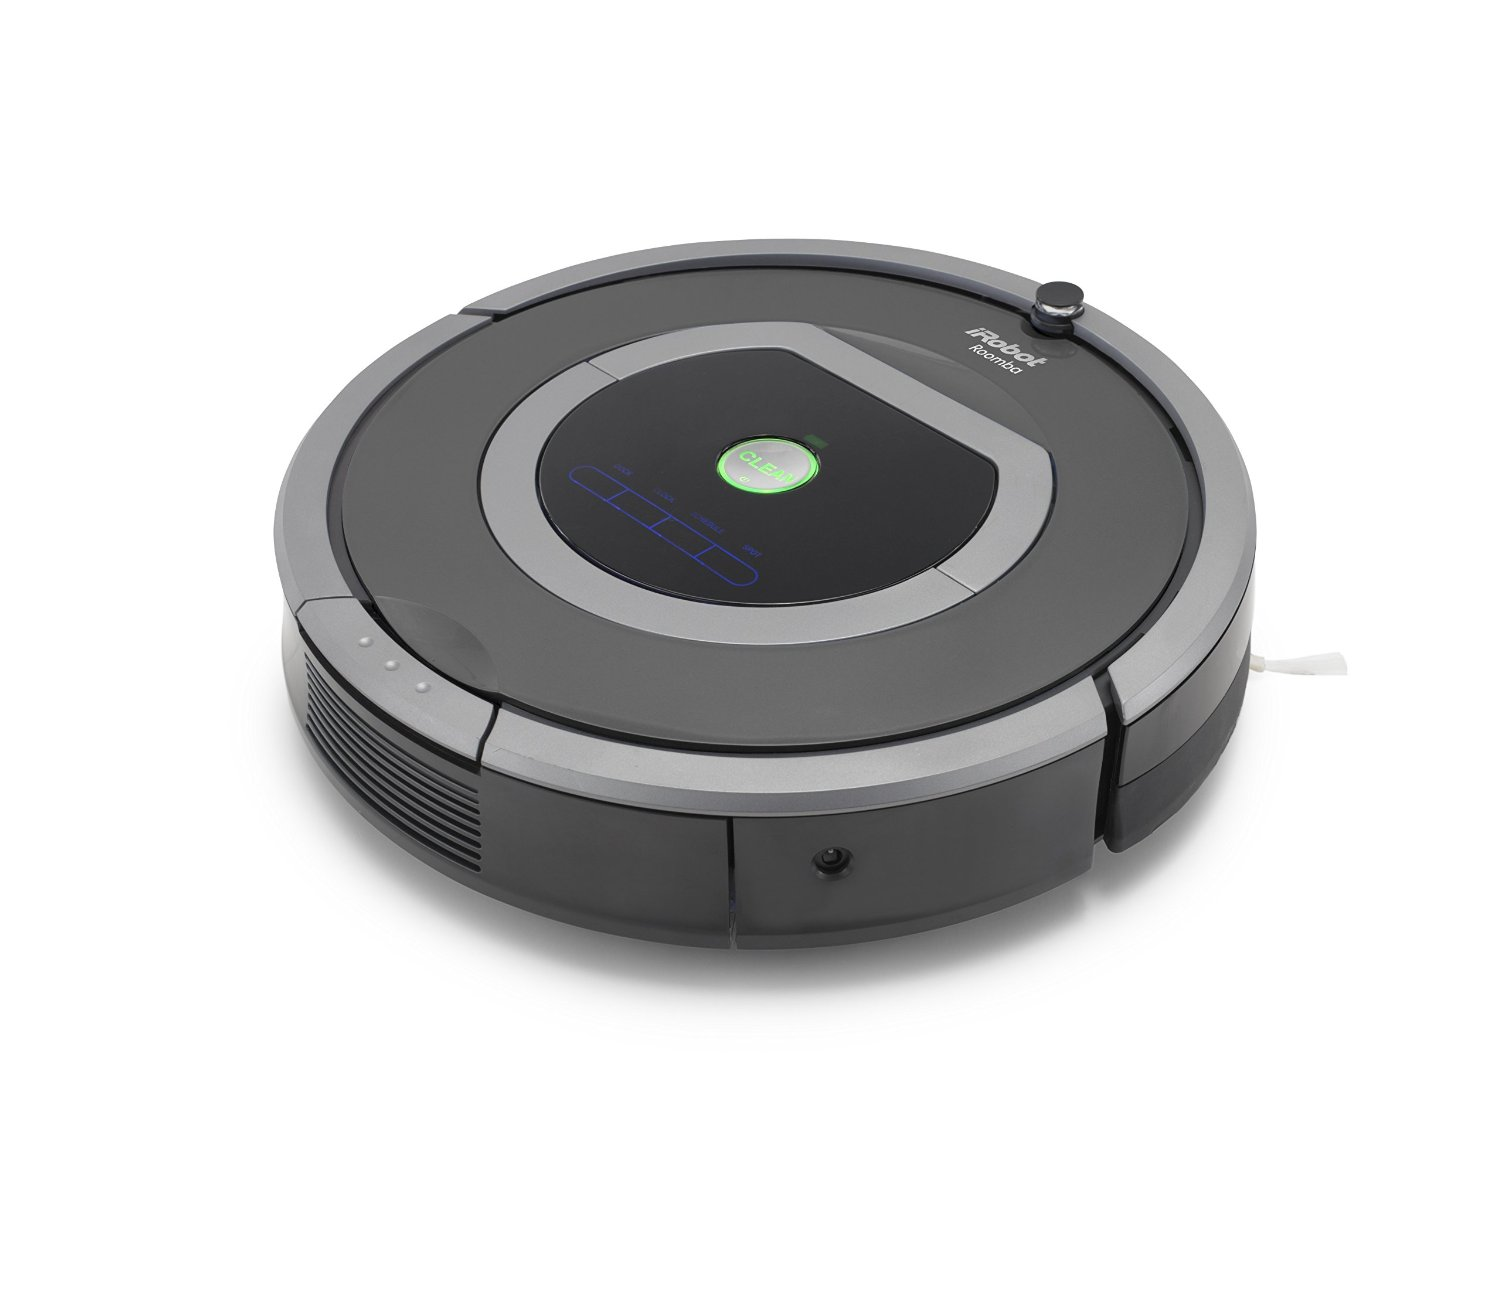 You and iRobot. Better Together. Learn more and shop for iRobot robot vacuums, robot mops and outdoor robots here. FREE Ground SHIPPING On All Robot Orders! Search Catalog Search. Store Store Home Robots About iRobot Support. Roomba® Robot Vacuums. Roomba® i7+ Roomba® i7 Roomba ® Robot.